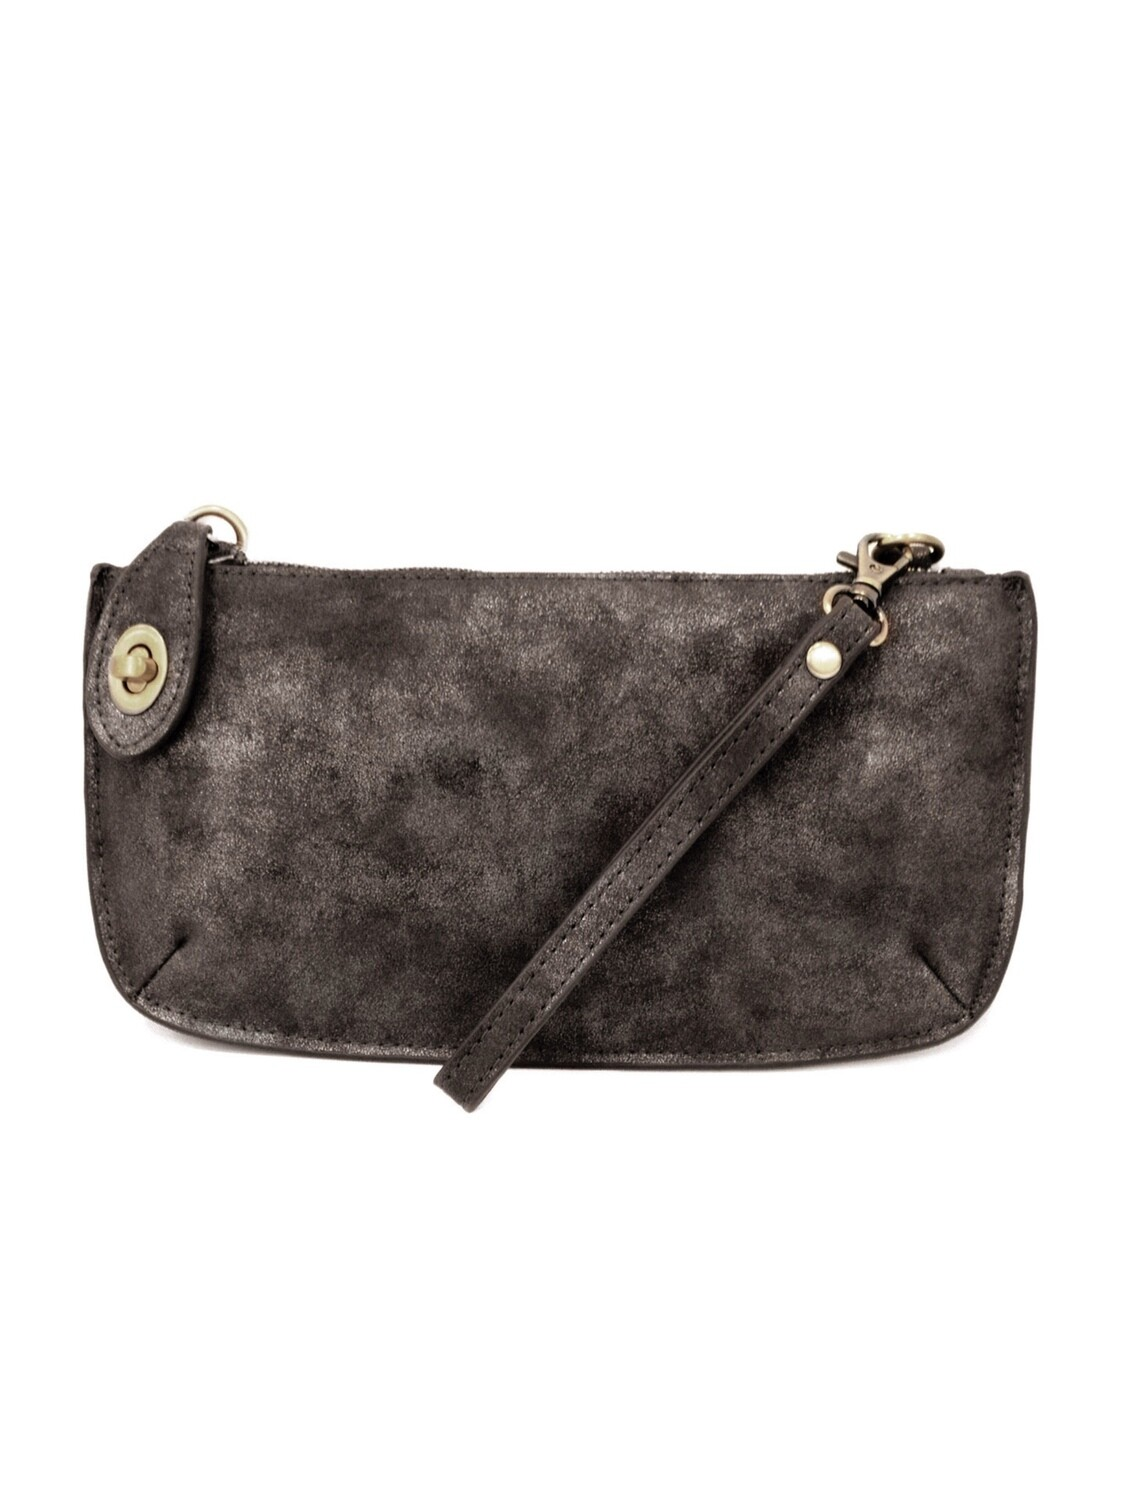 Lux Crossbody Wristlet Clutch Black JA8020-00